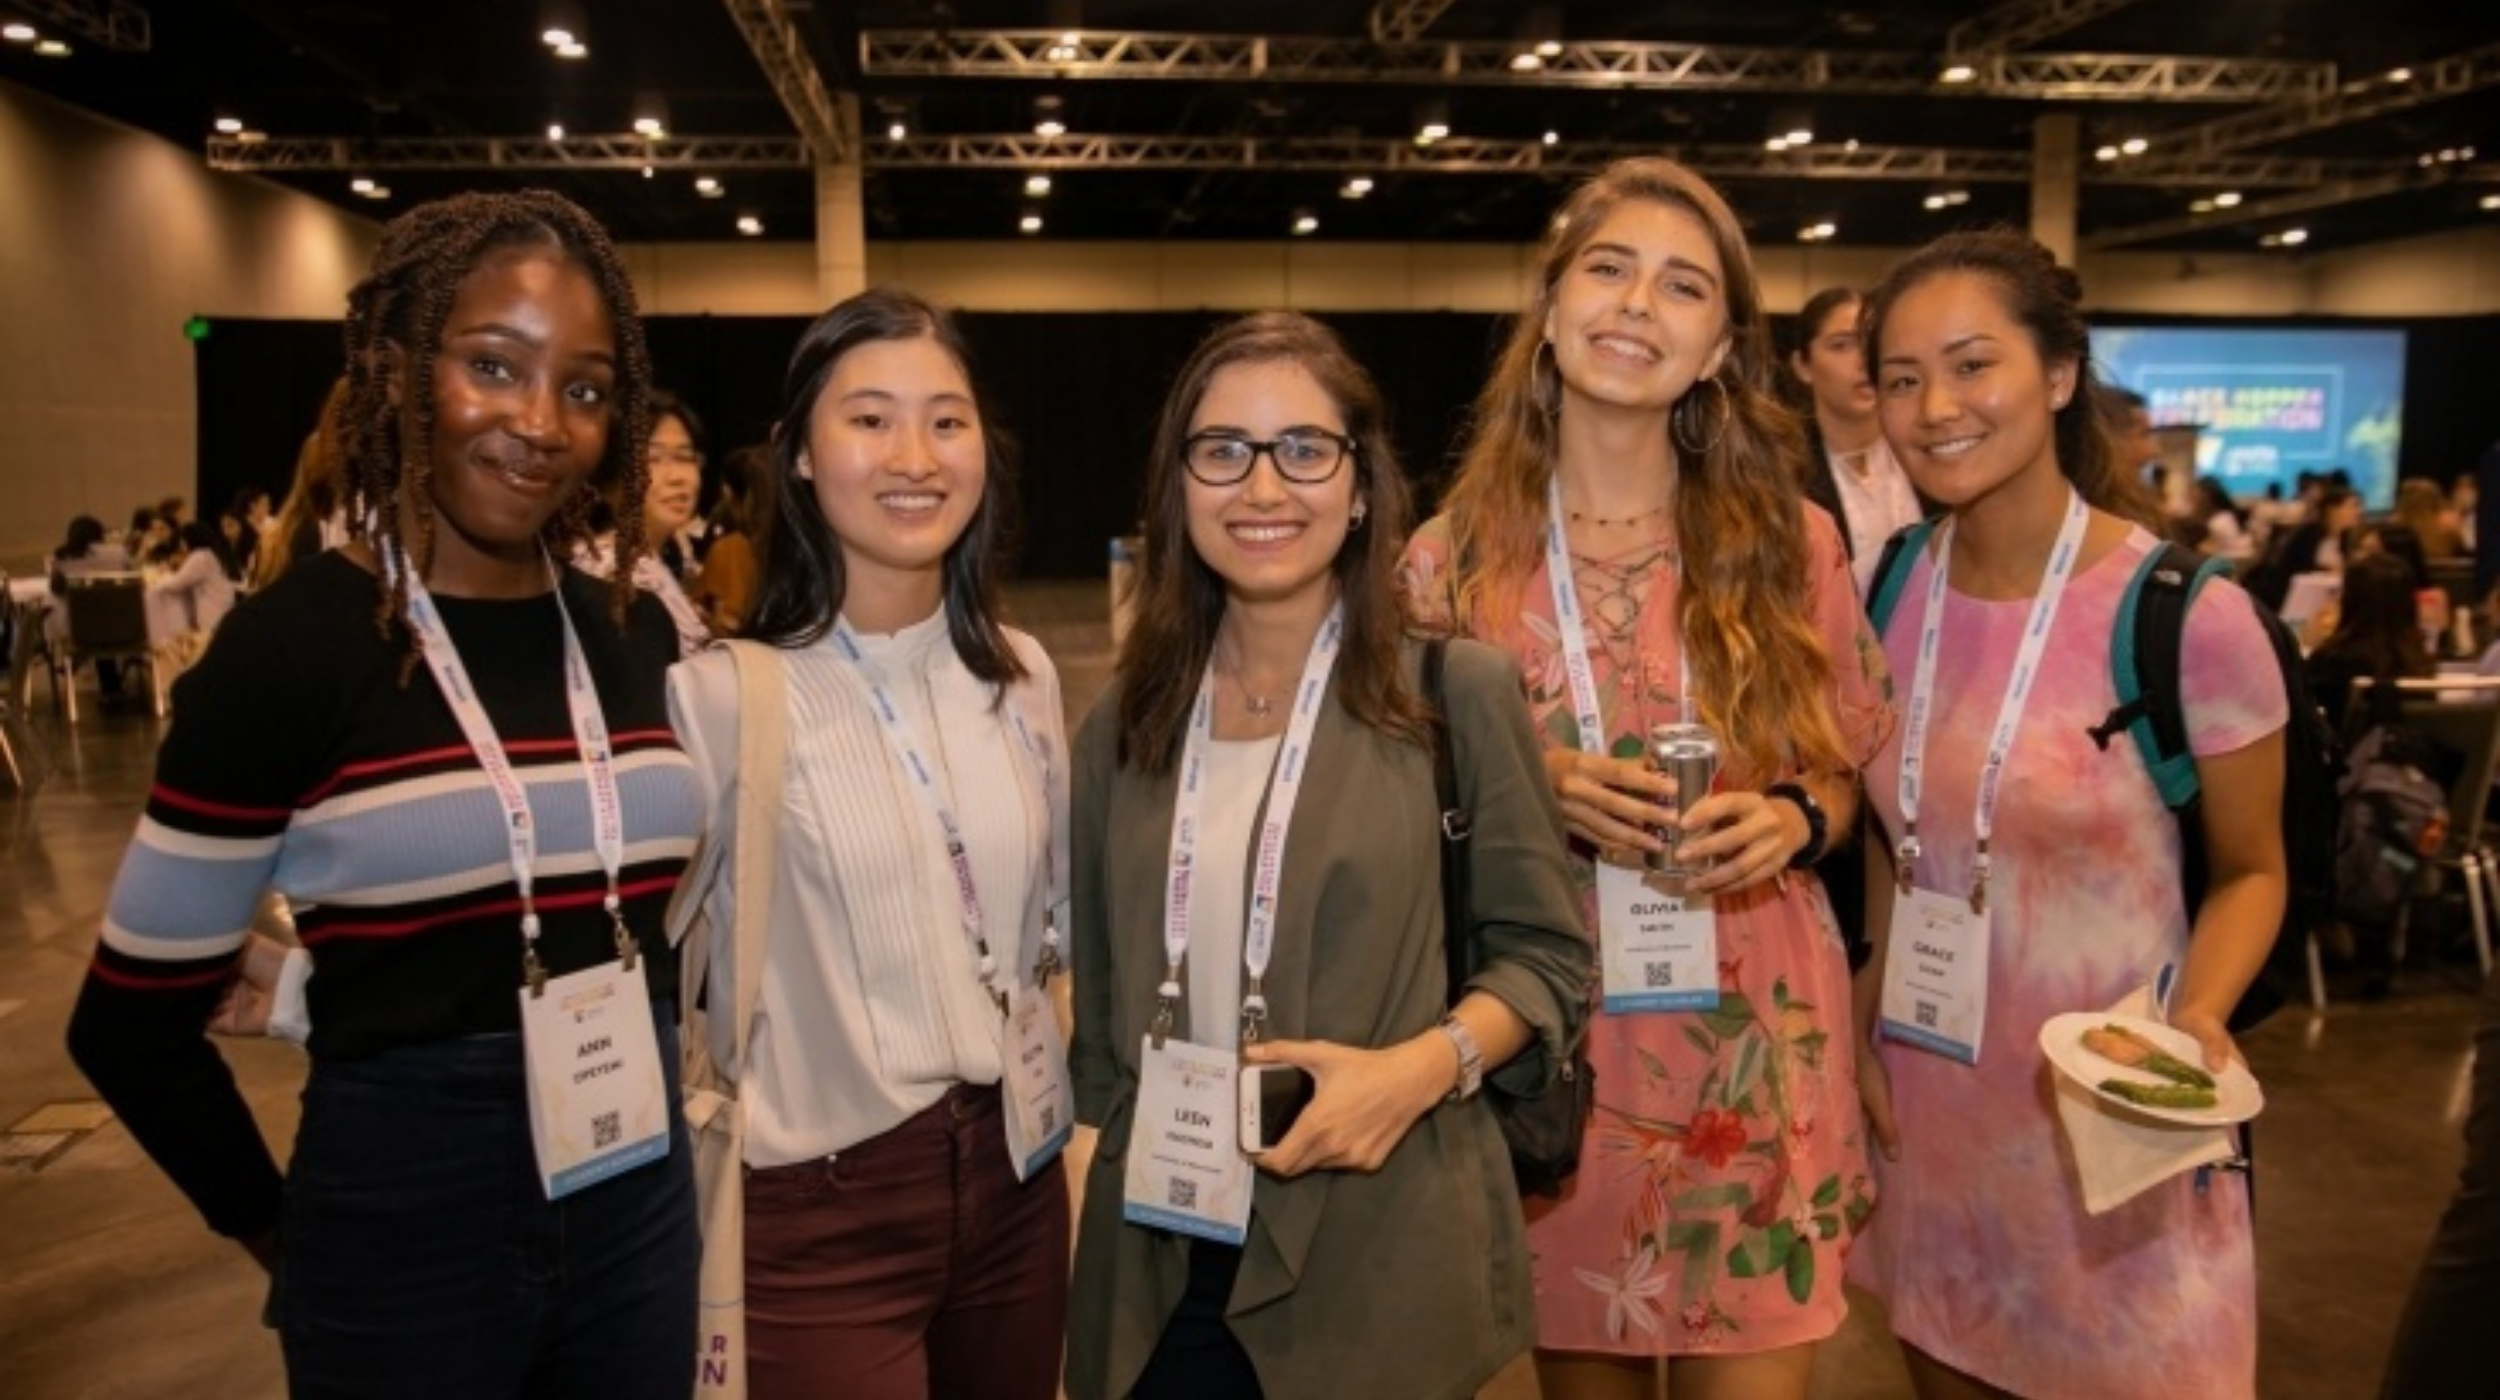 women in tech (image: group of young women at a convention pose for photo)